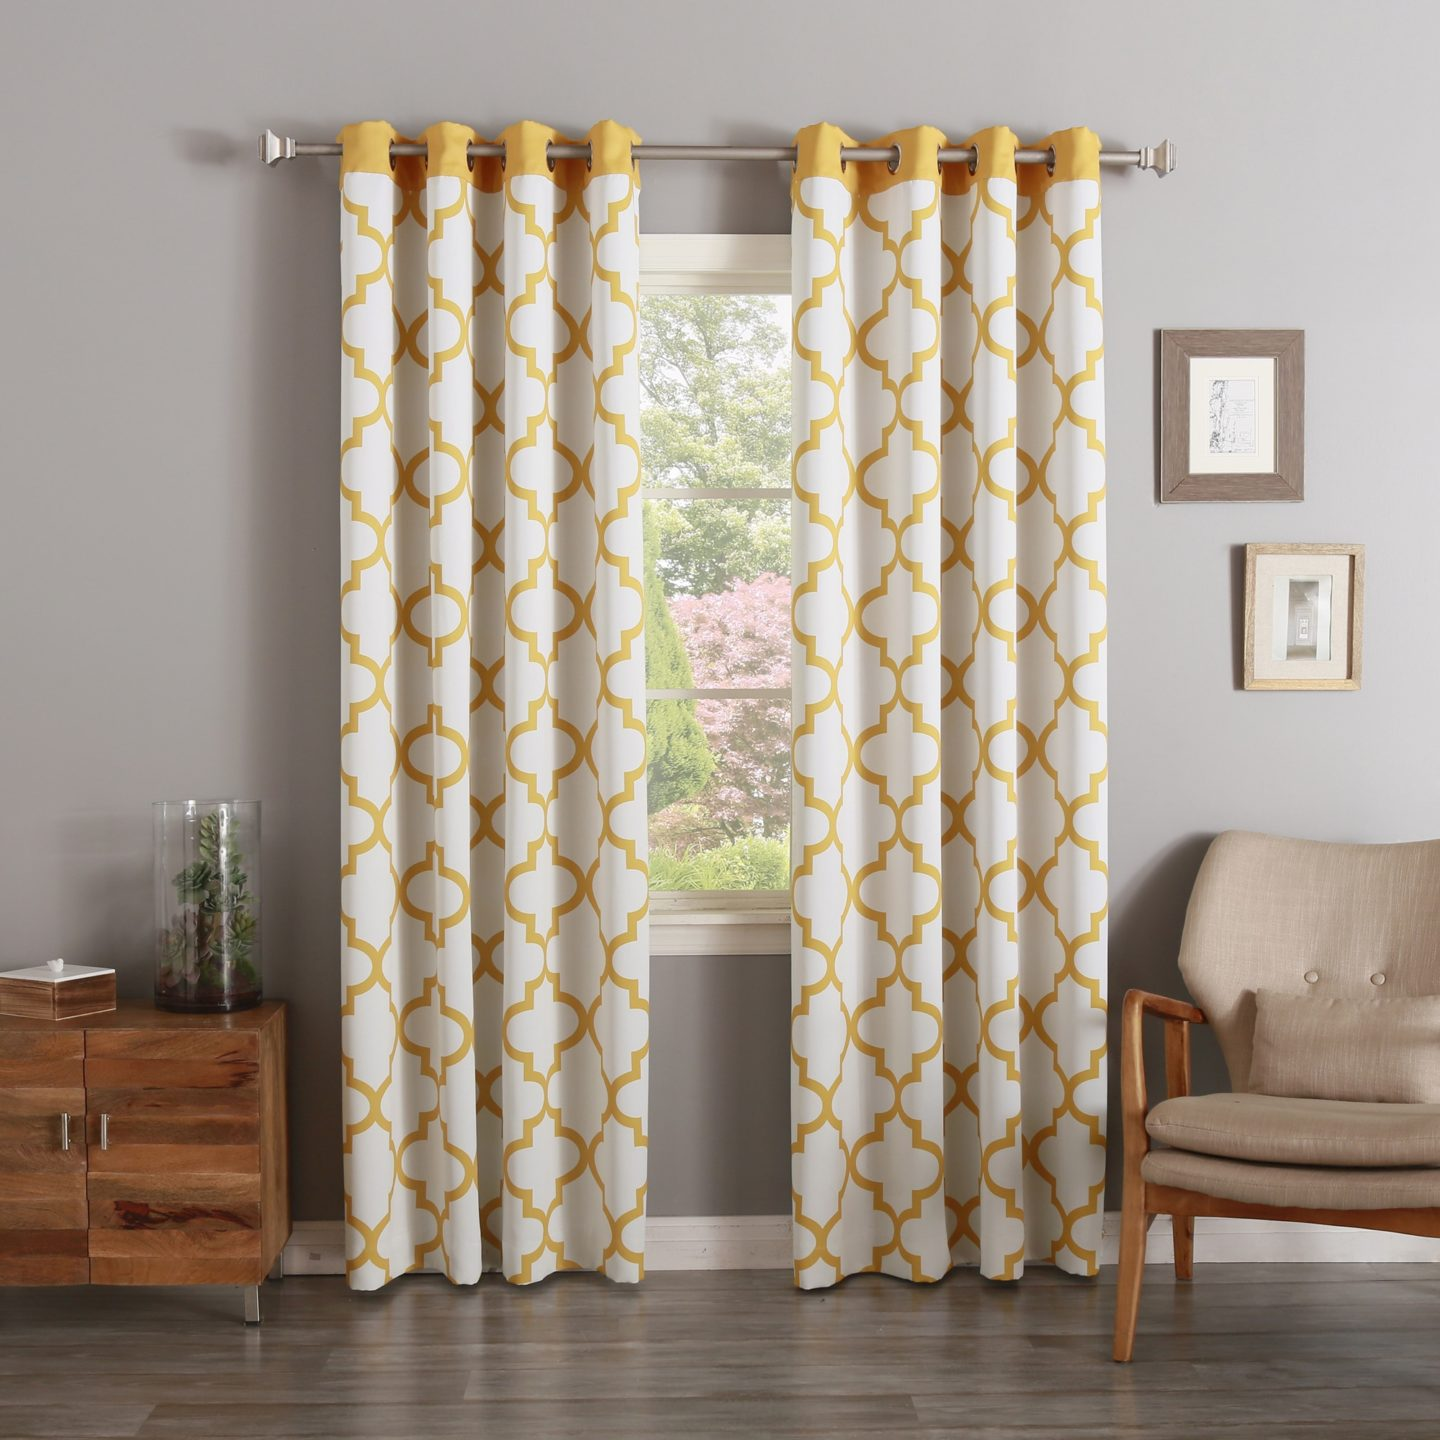 yellow and cream trellis-print thermal curtains